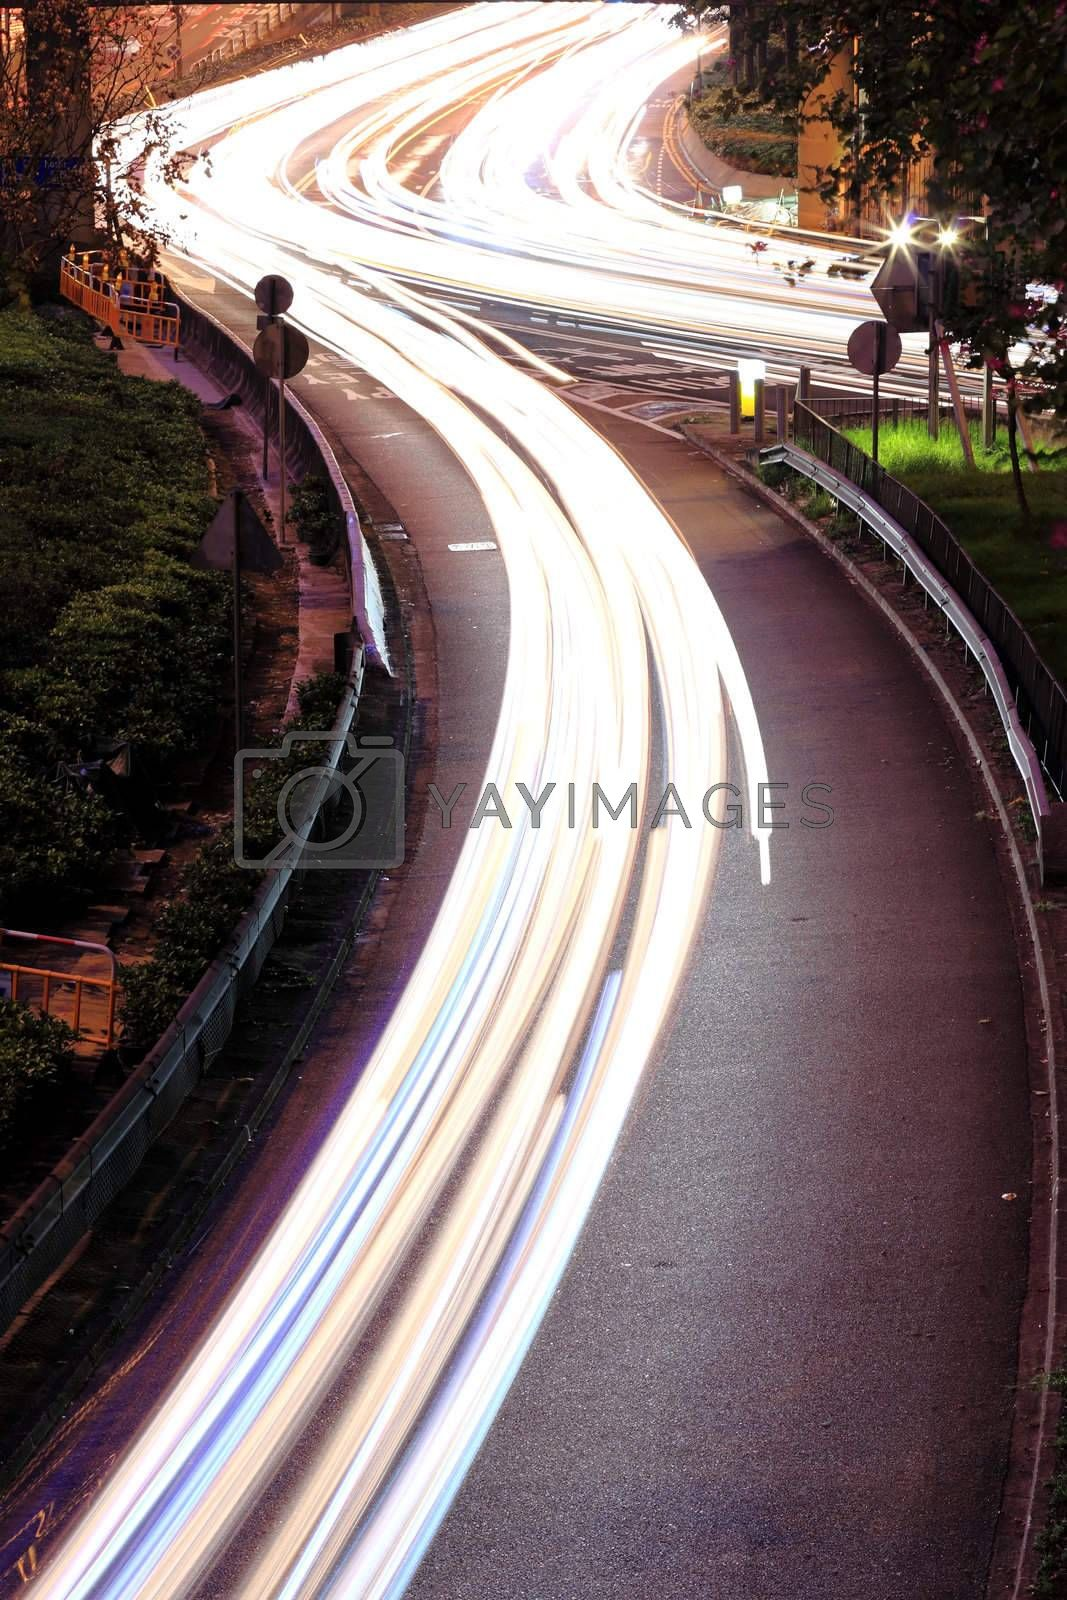 Royalty free image of traffic in downtown by leungchopan